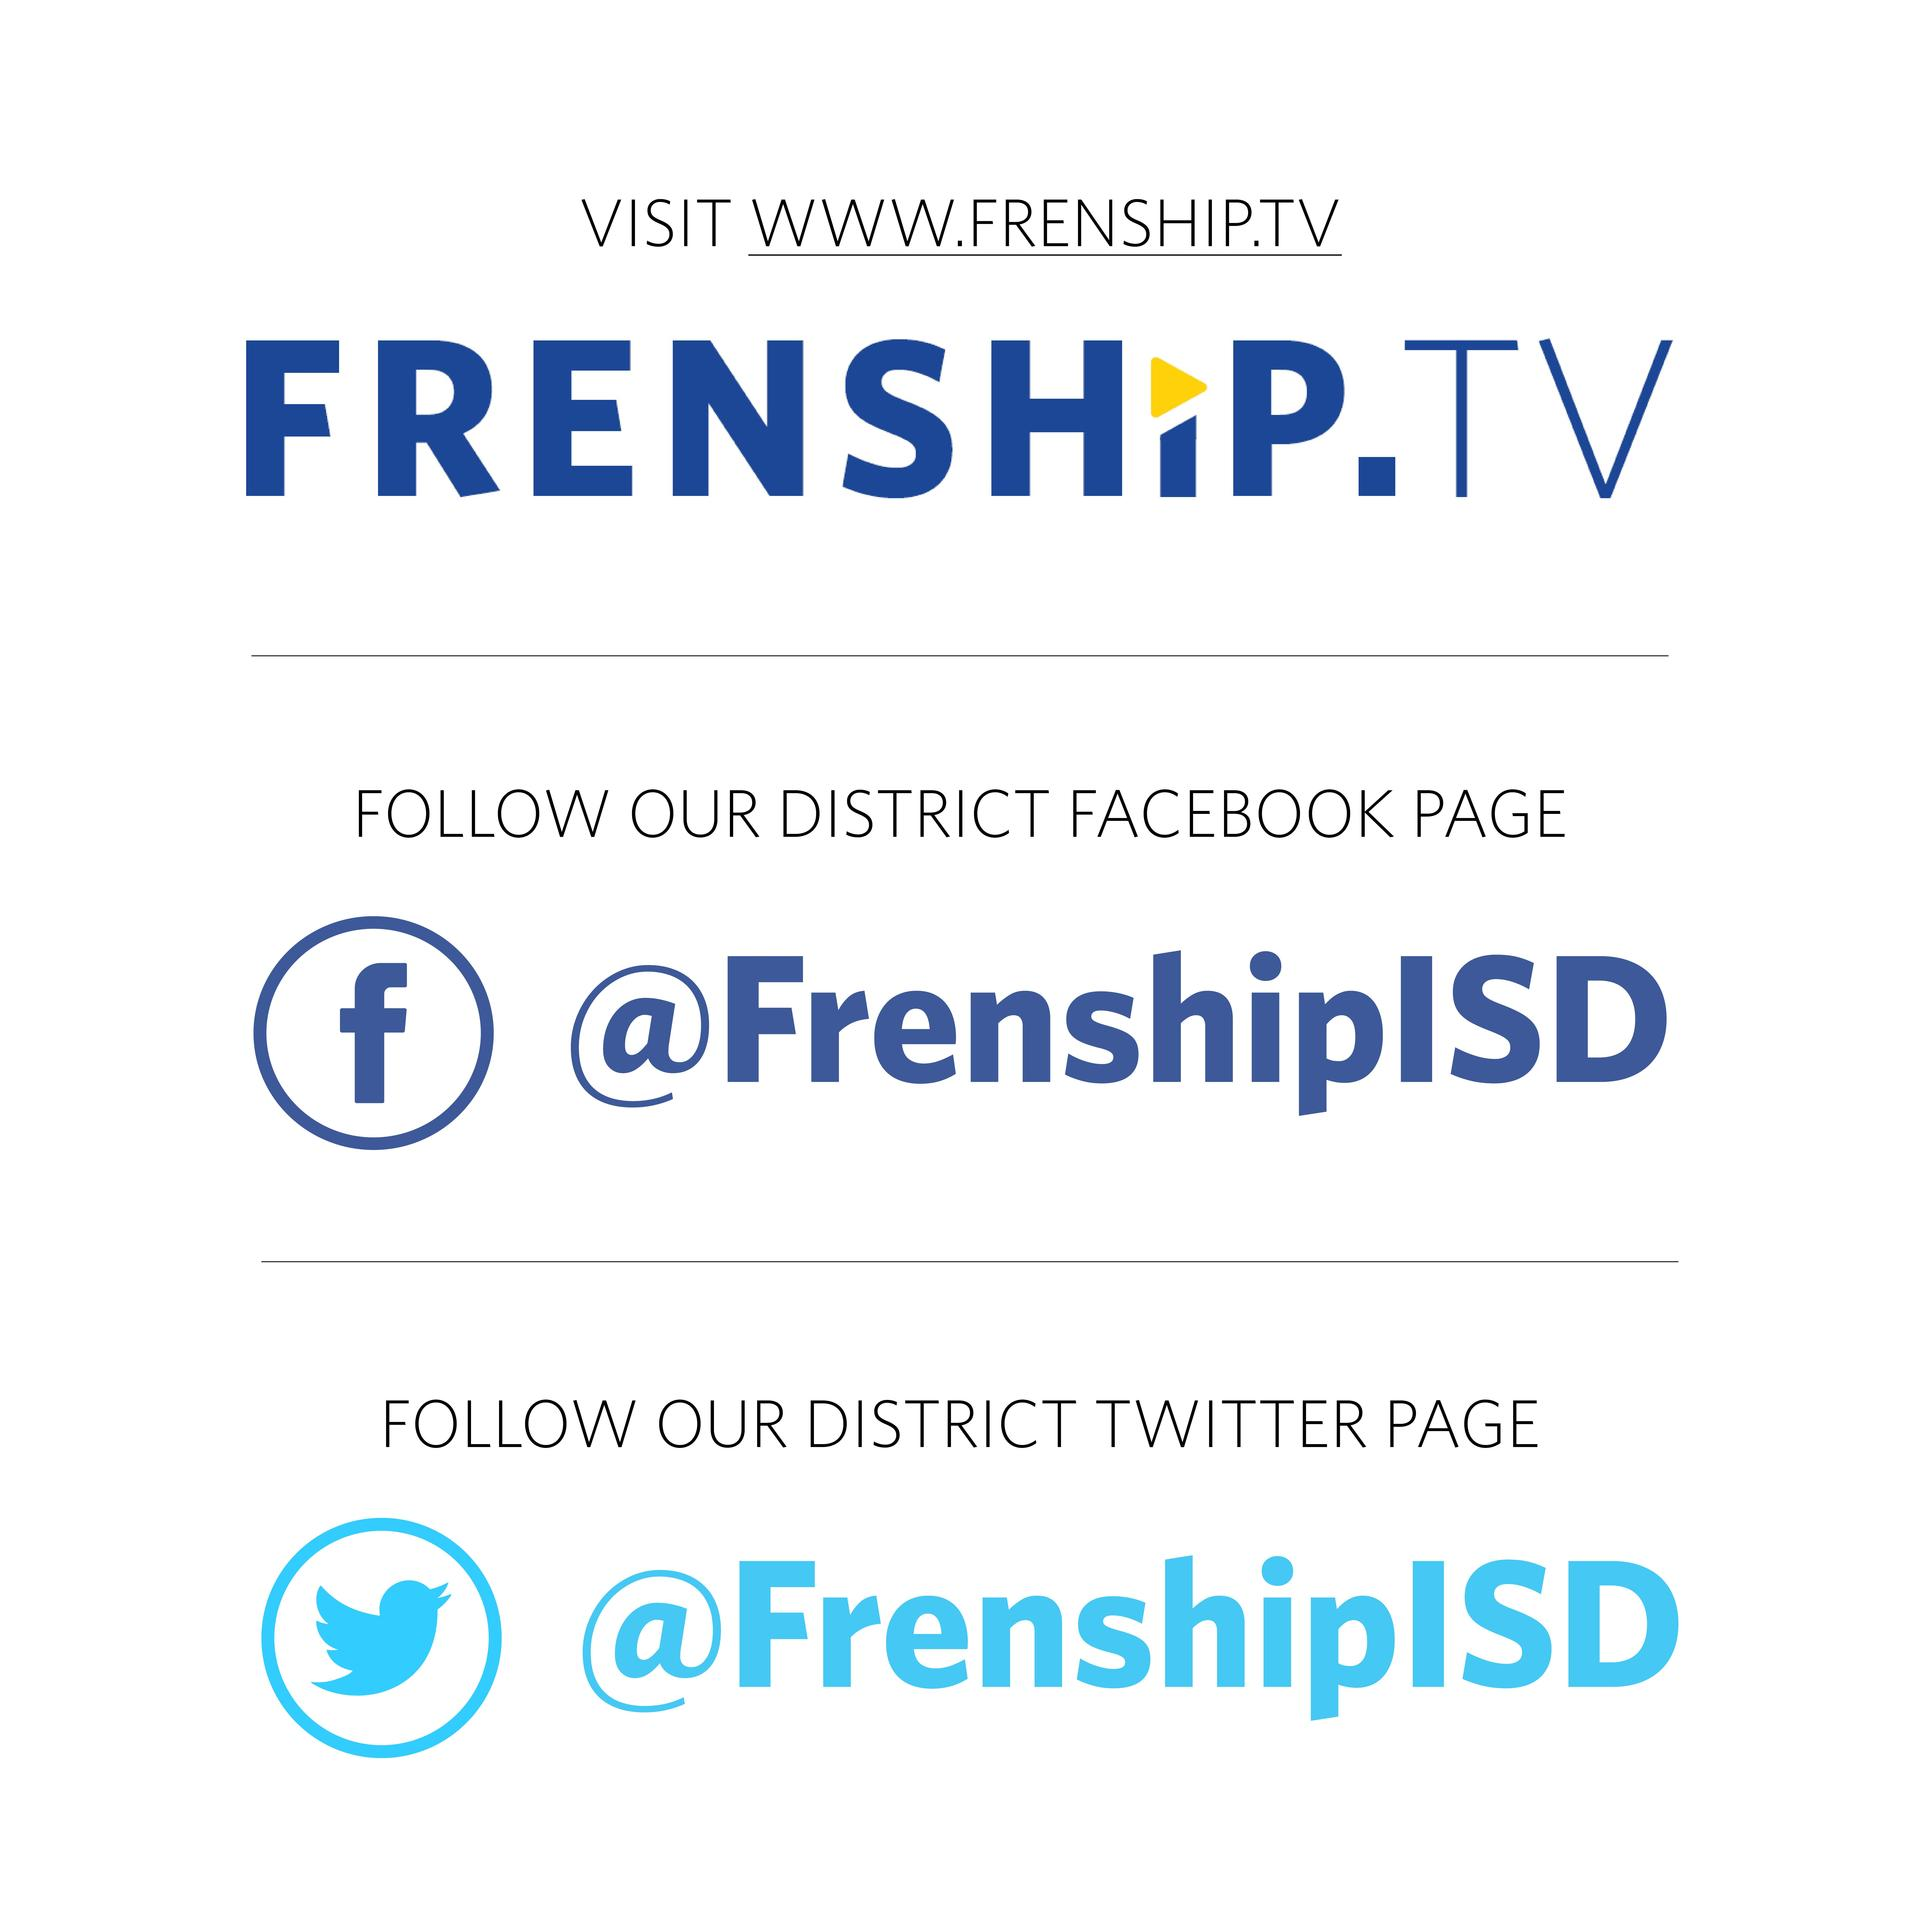 watch graduation on frenship.tv and social media